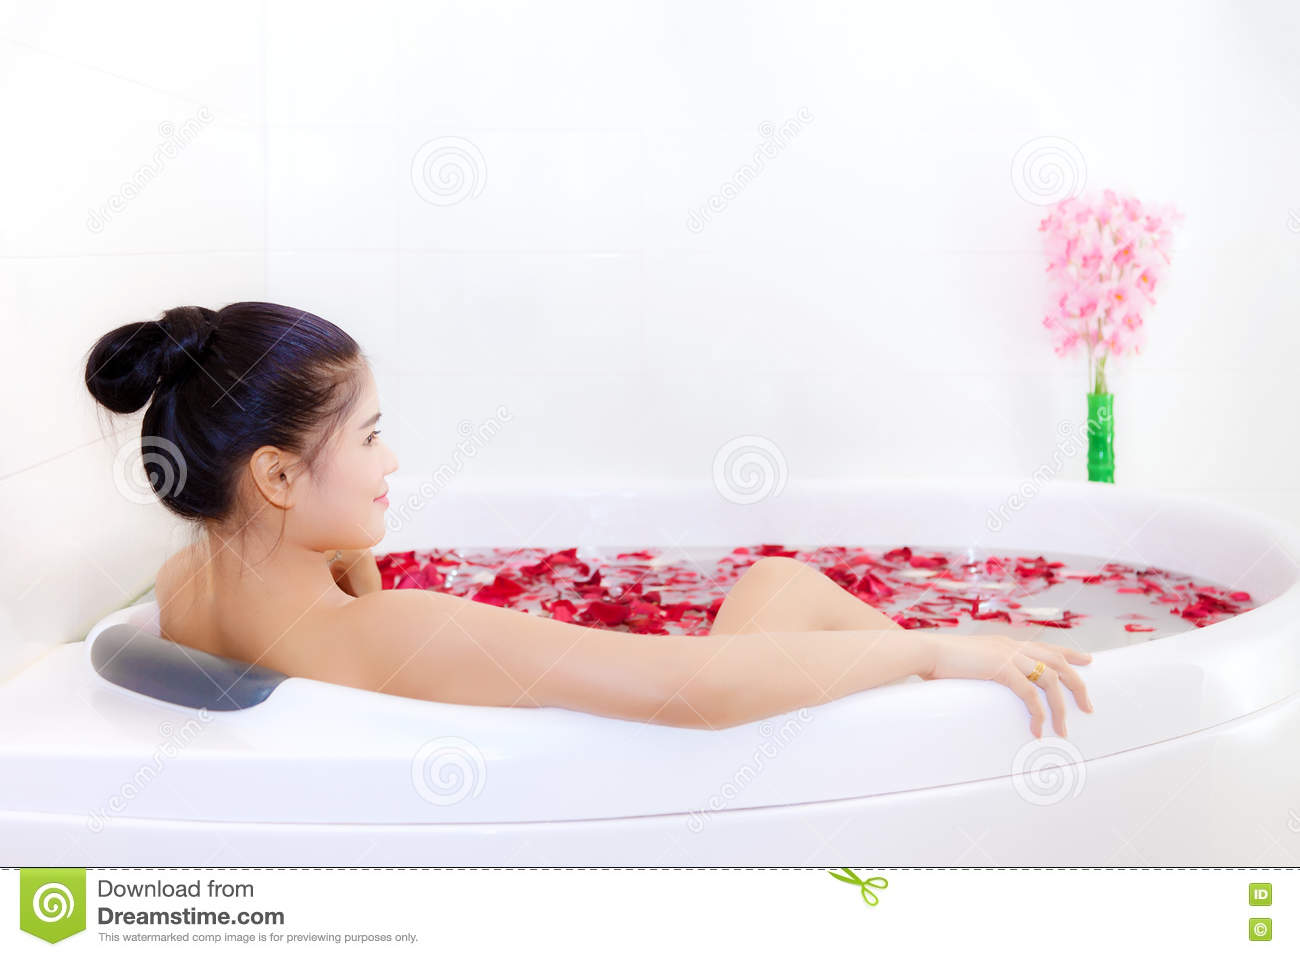 Gianni recommend best of massage bath asian